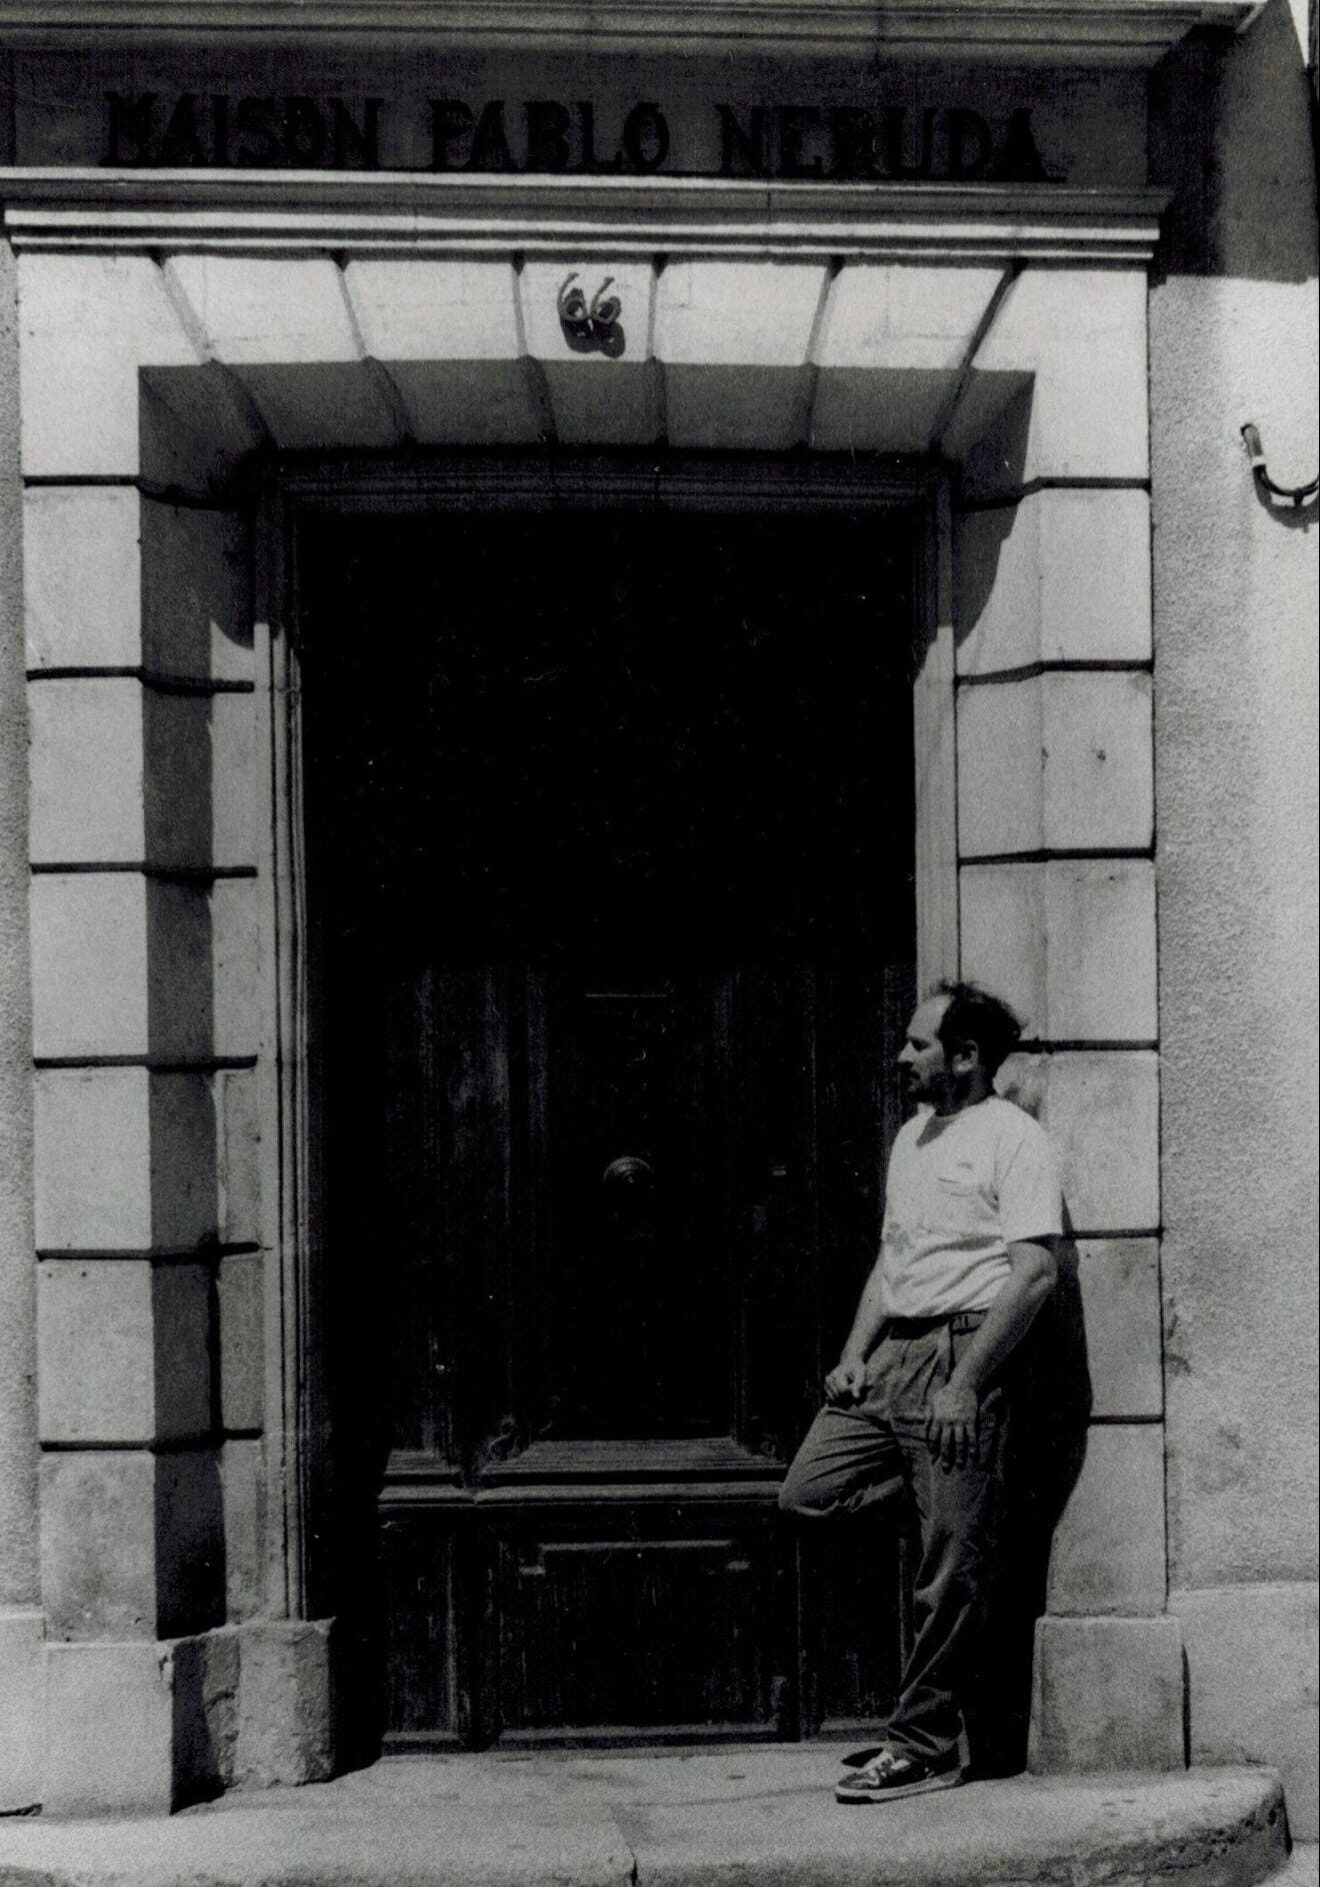 Joel Eis at the door of Pablo Neruda's house Arles, France. 1990 (photo, T. Labori)